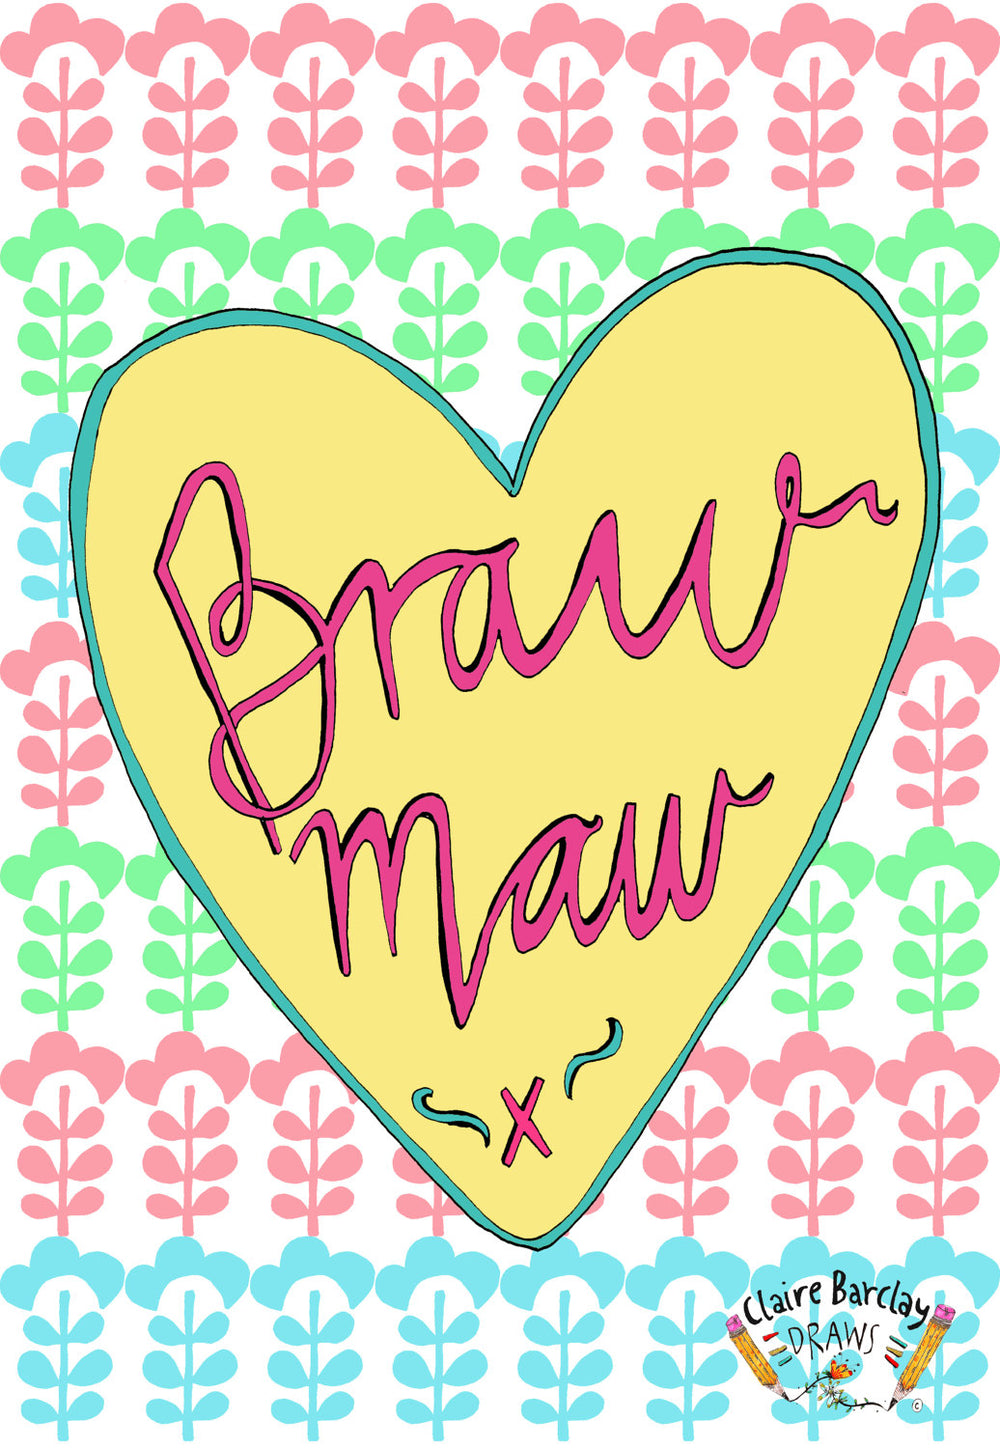 BRAW MAW, Mother's Day Greetings Card, Scottish Slang Typography Quirky Mothers Day Card, Humour Funny Card for a Pure Braw Mum